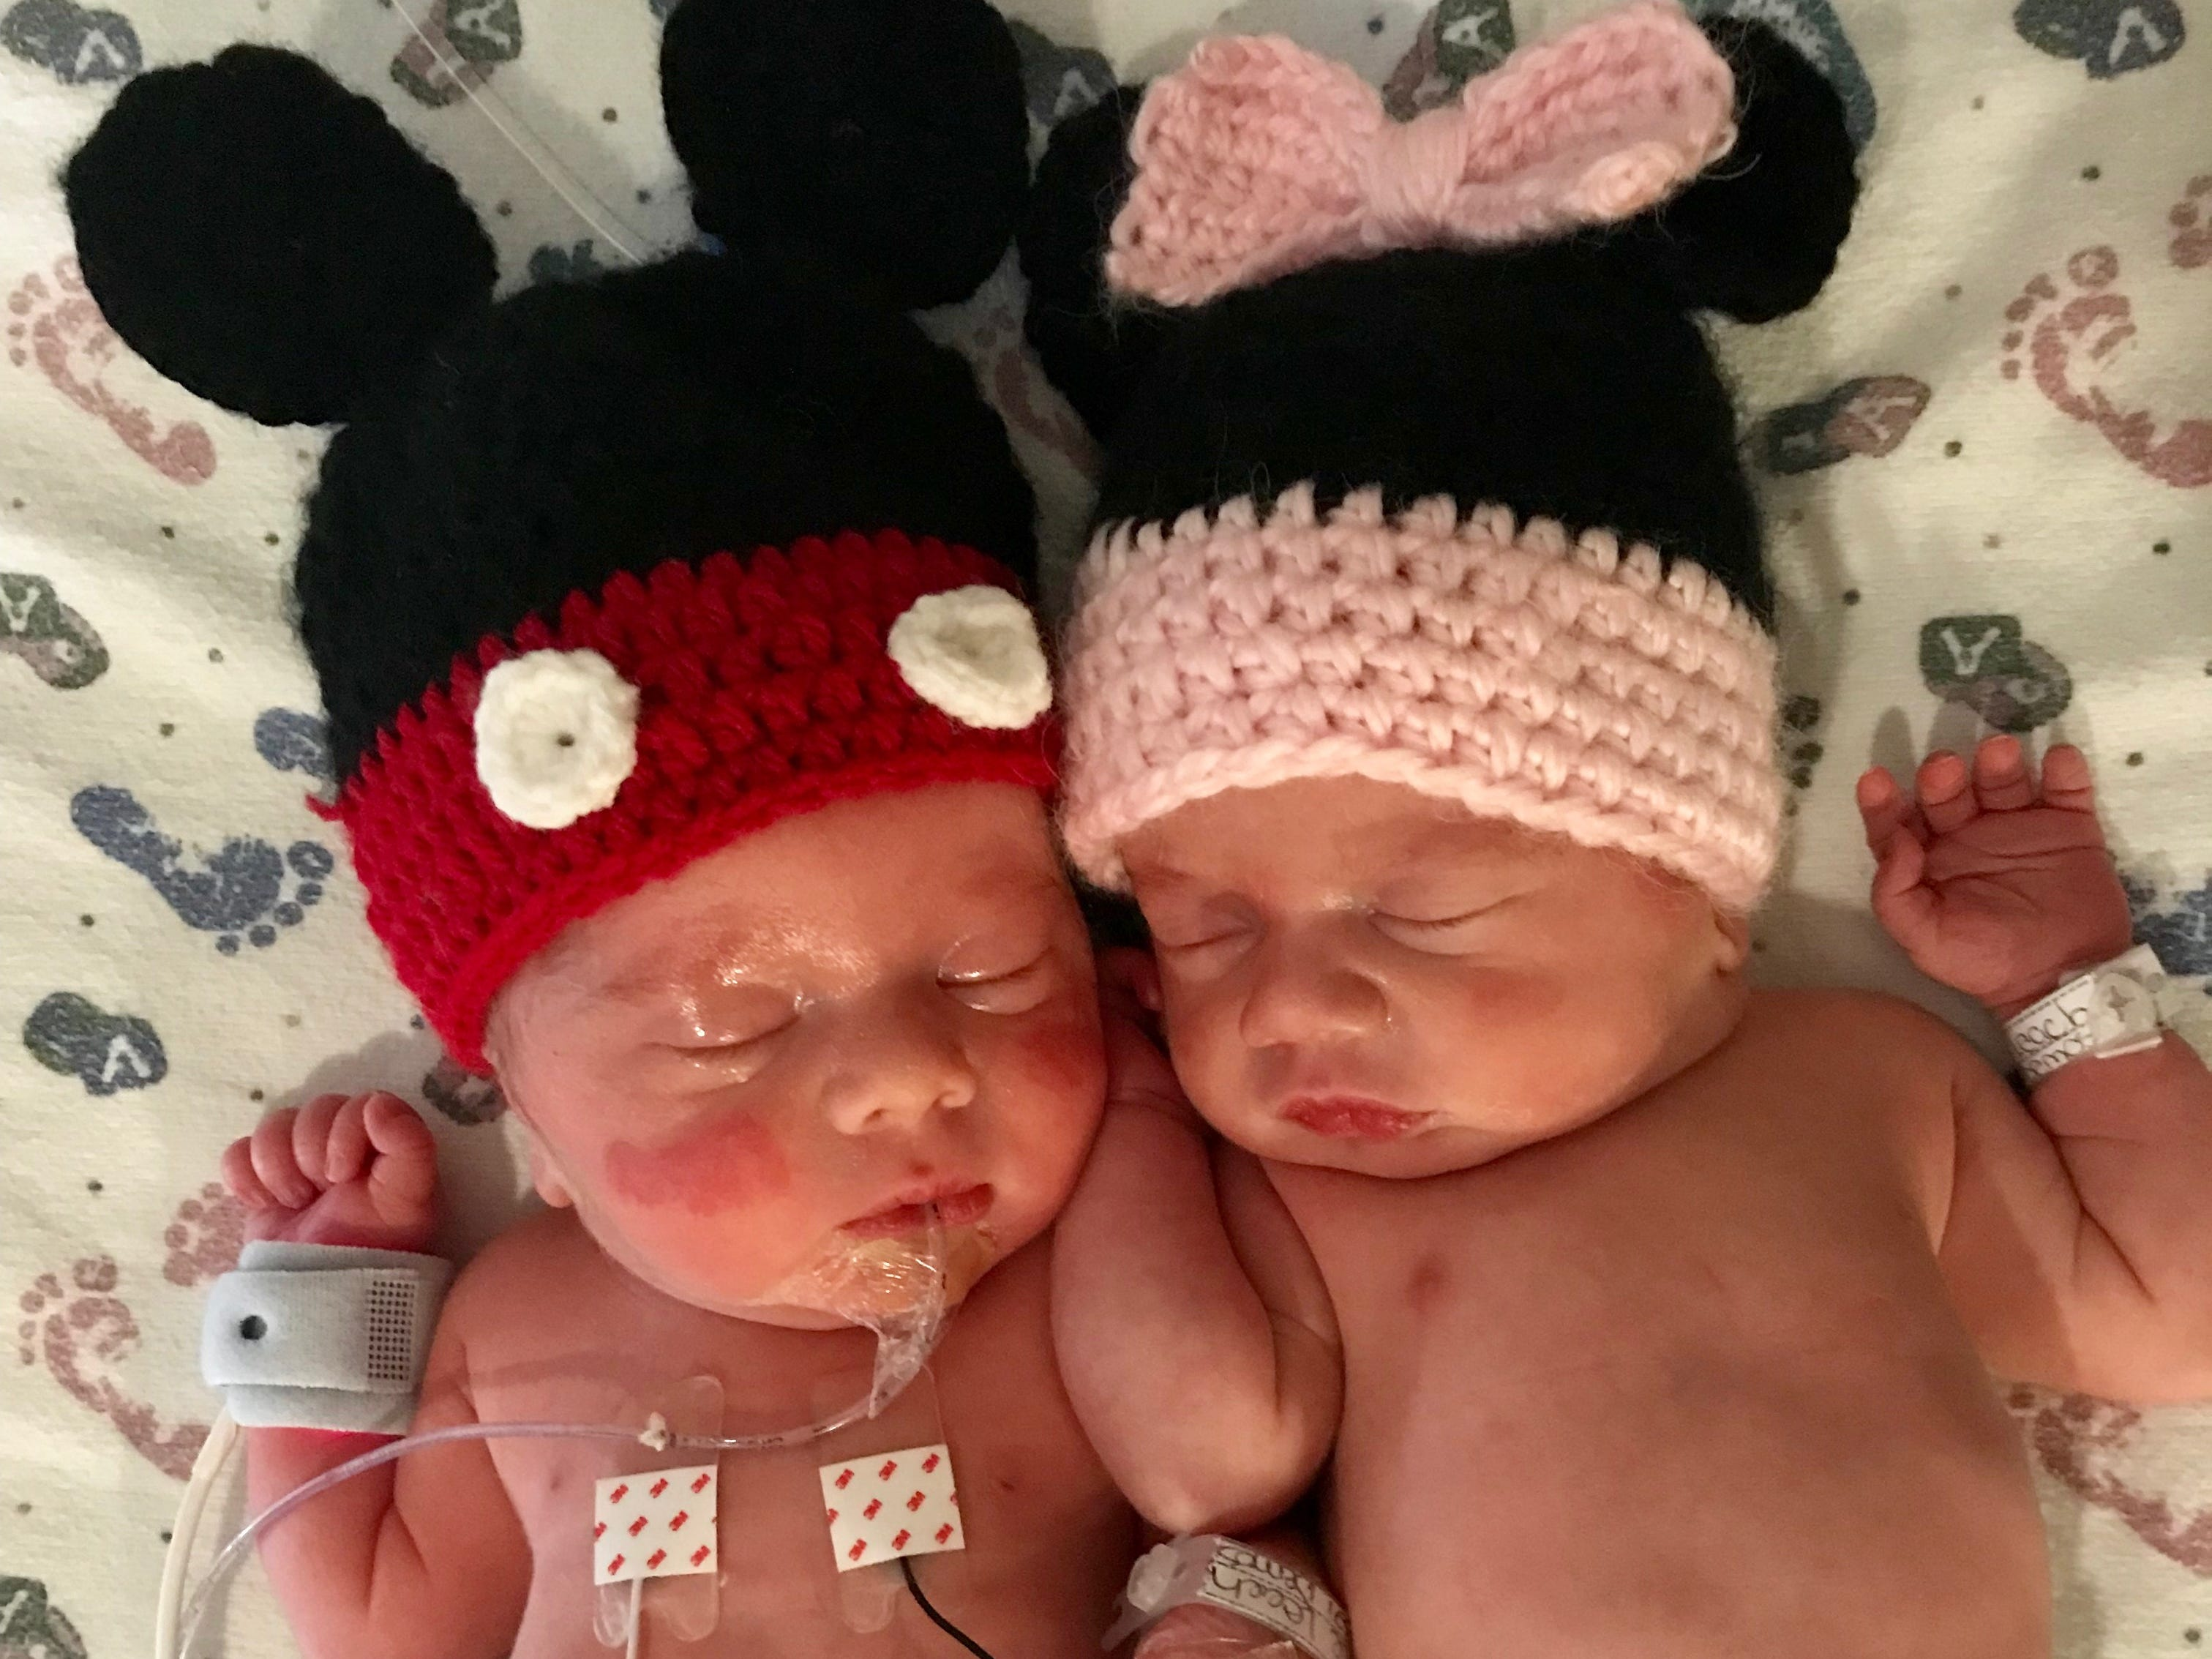 The Leach twins celebrated their birth and New Year's Day clad in their Mickey and Minnie hats. Jan. 1, 2019